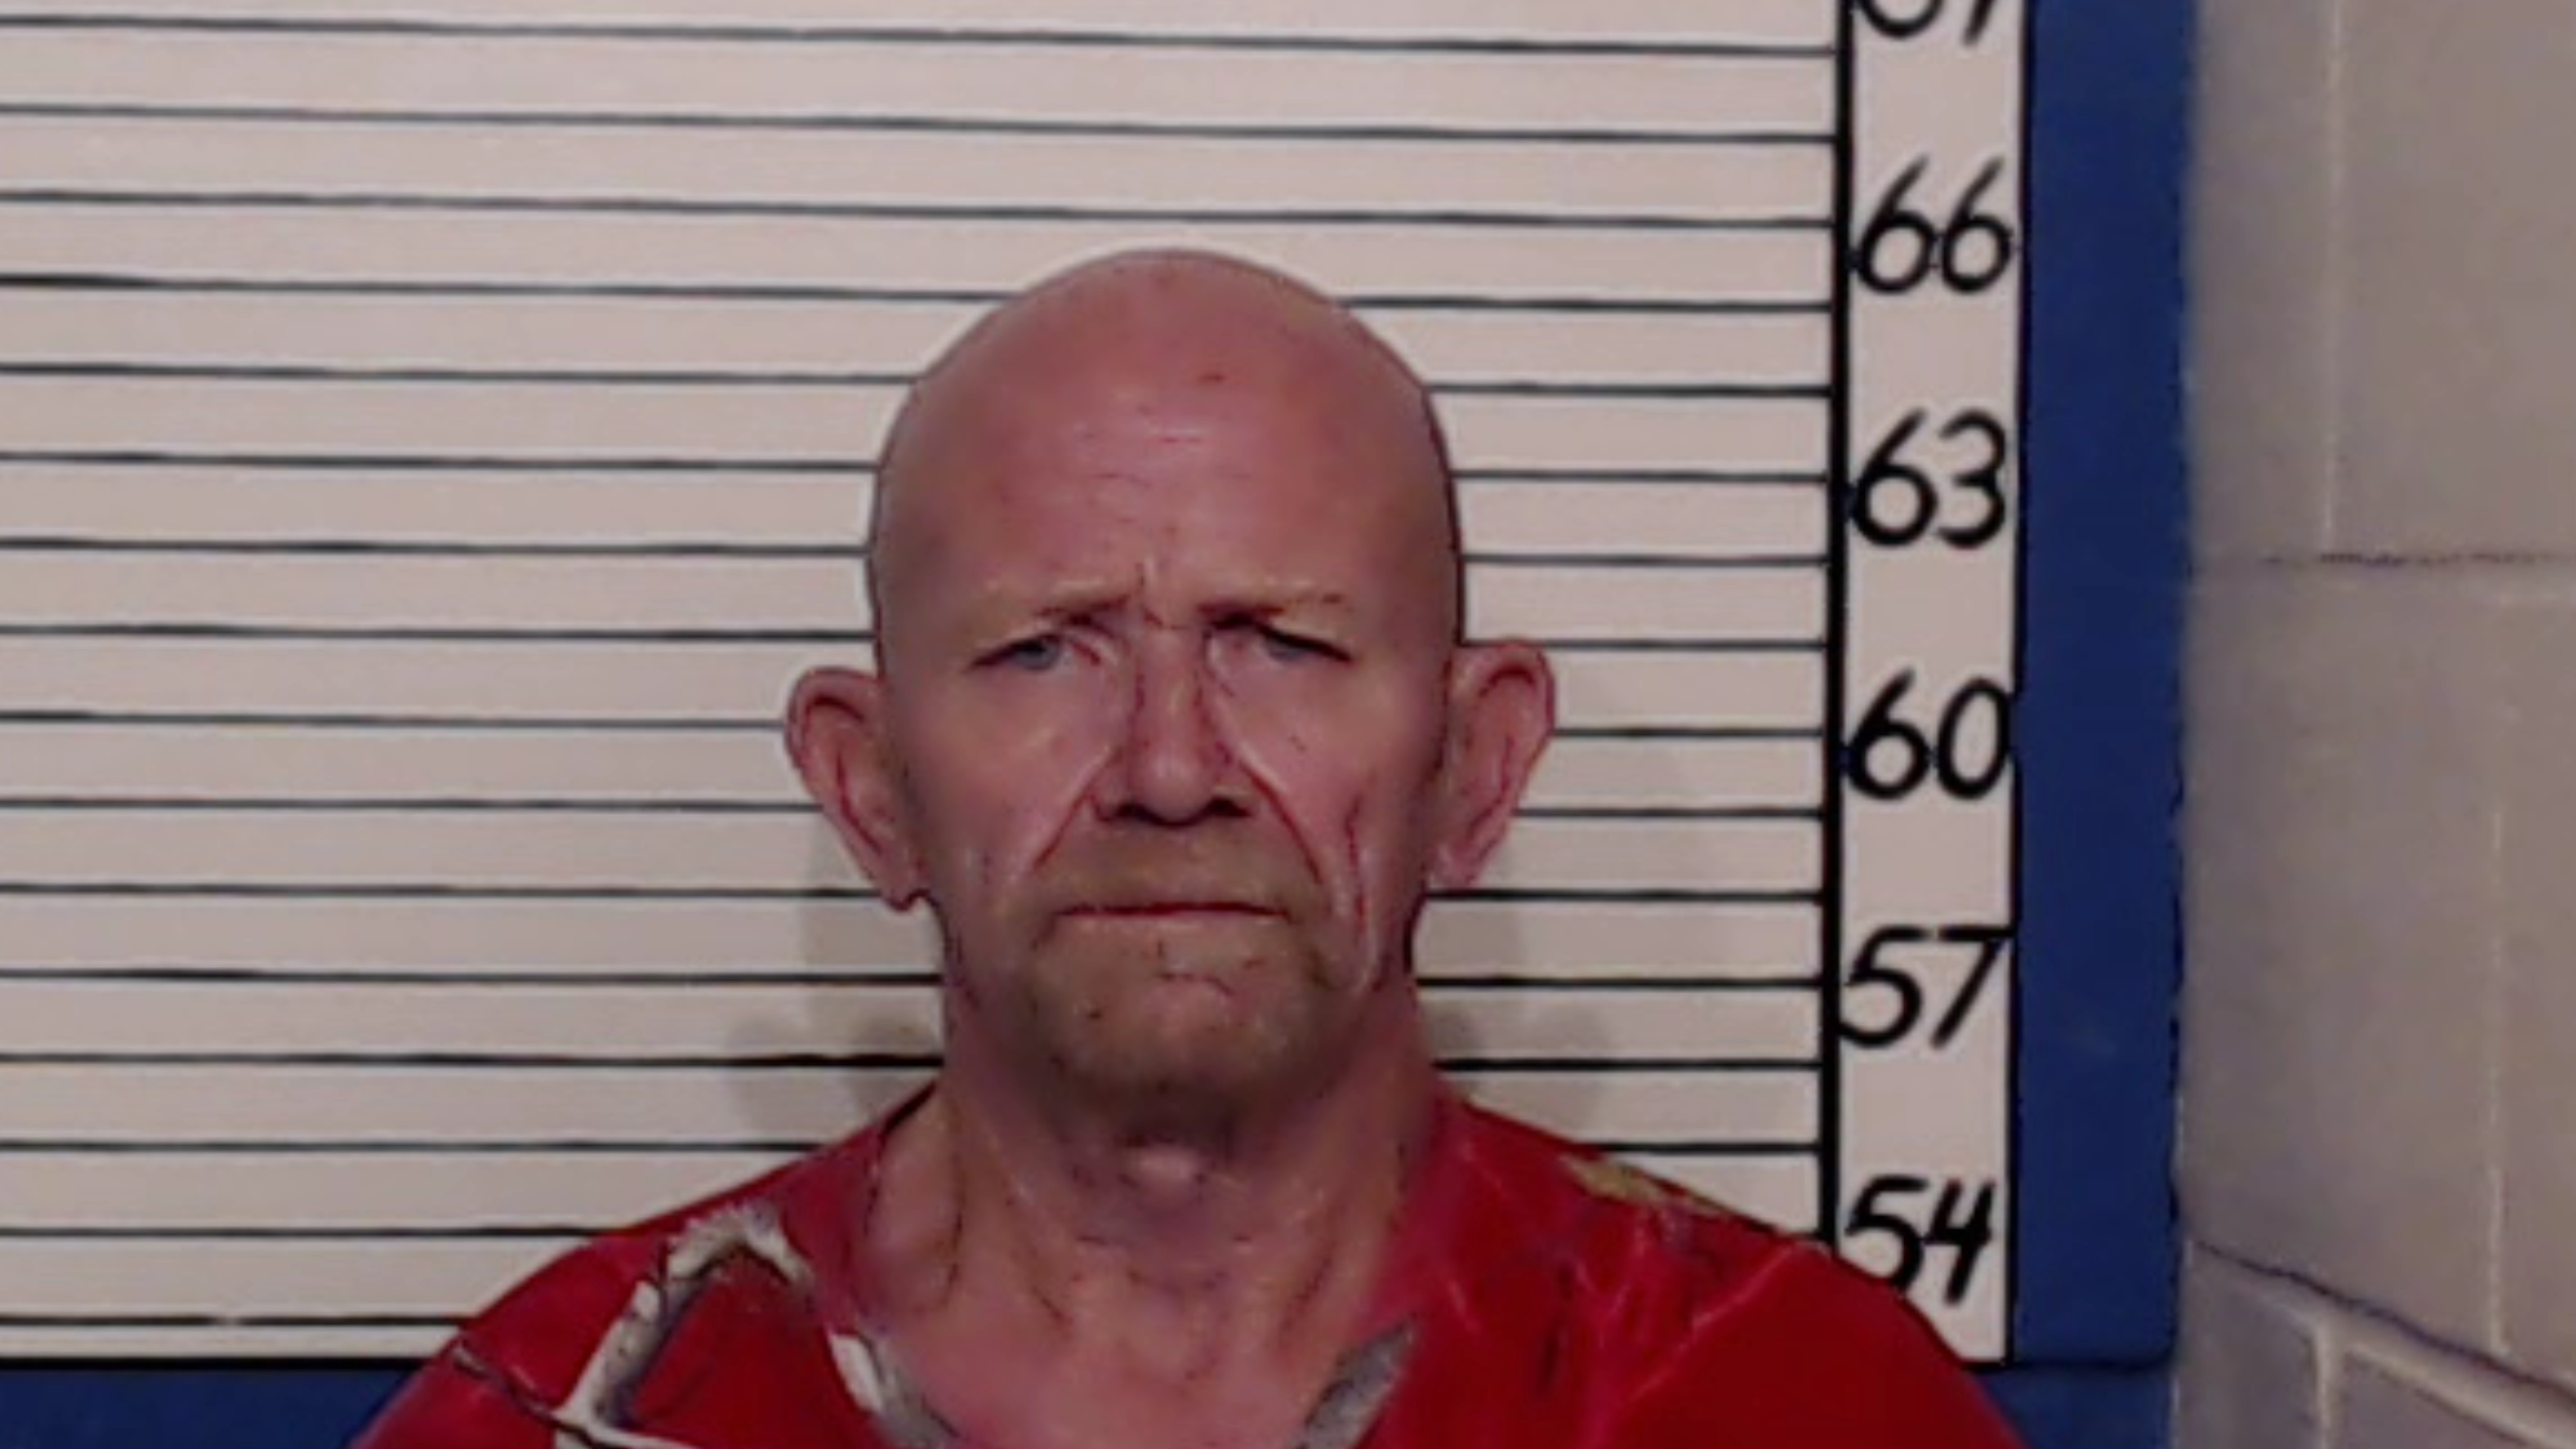 Stephen Tate. (Photo courtesy: Comal County Sheriff's Office)